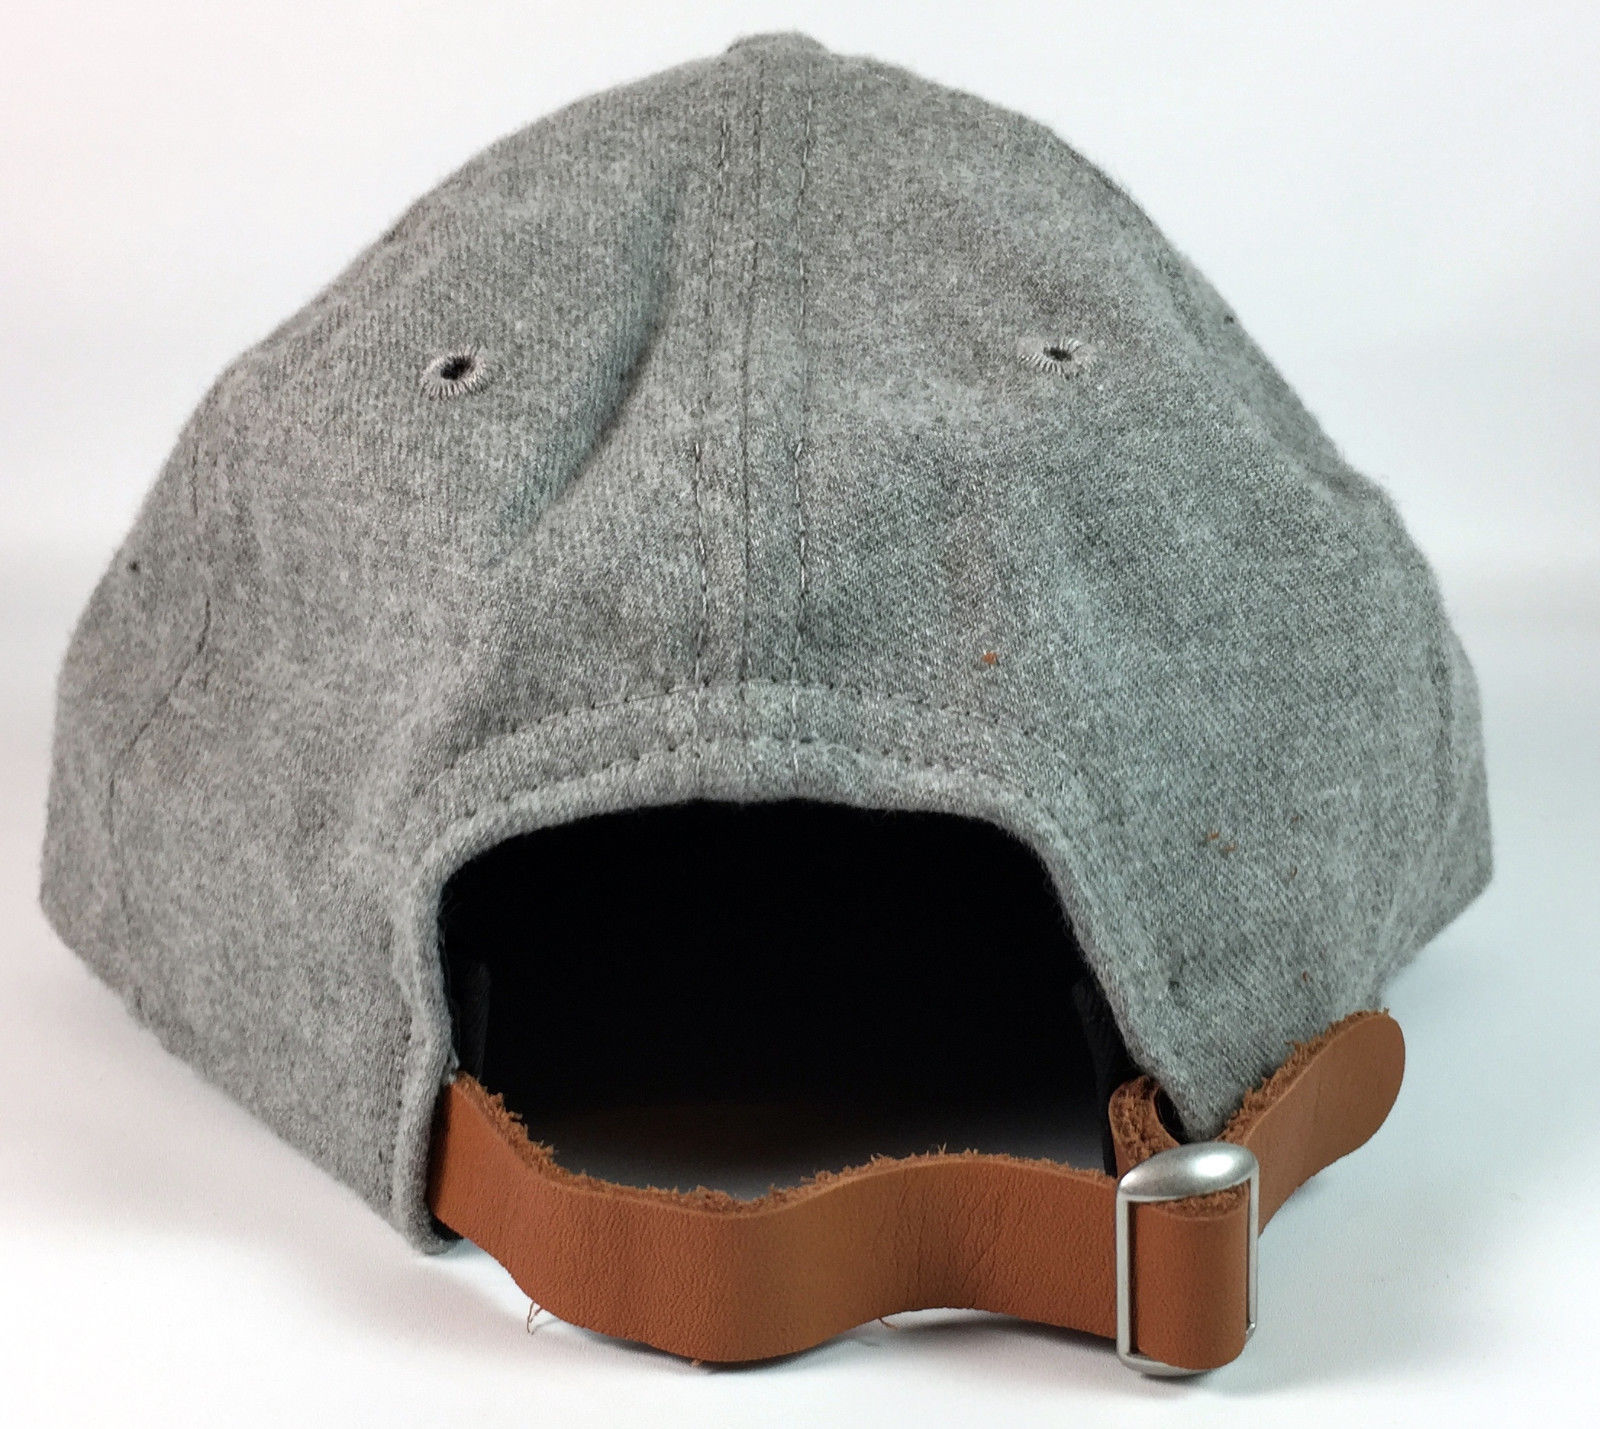 clearance sale outlet for sale store New Era Shinola Jackie Robinson 42 Strapback and 11 similar items